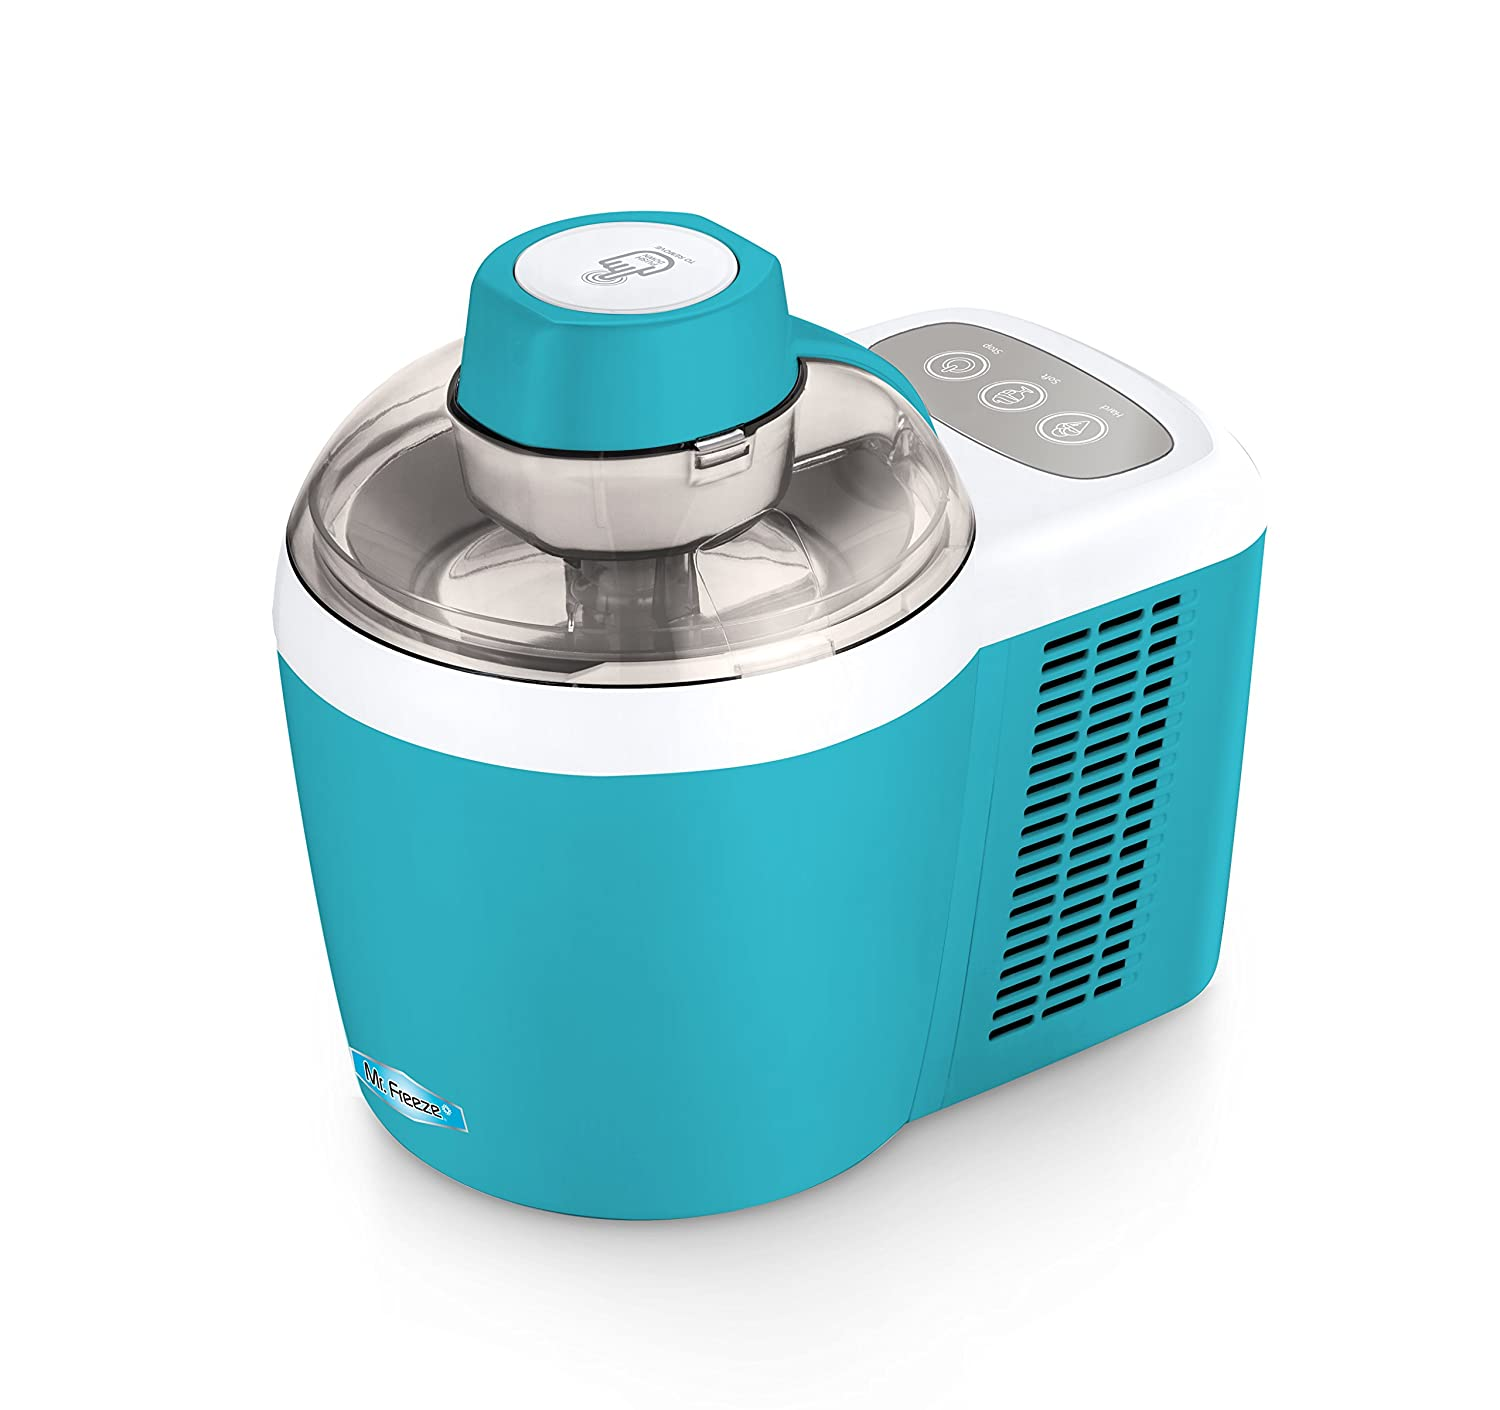 Mr. Freeze EIM-700T Self-Freezing Self-Refrigerating Ice Cream Maker, 1.5 Pint, Turquoise